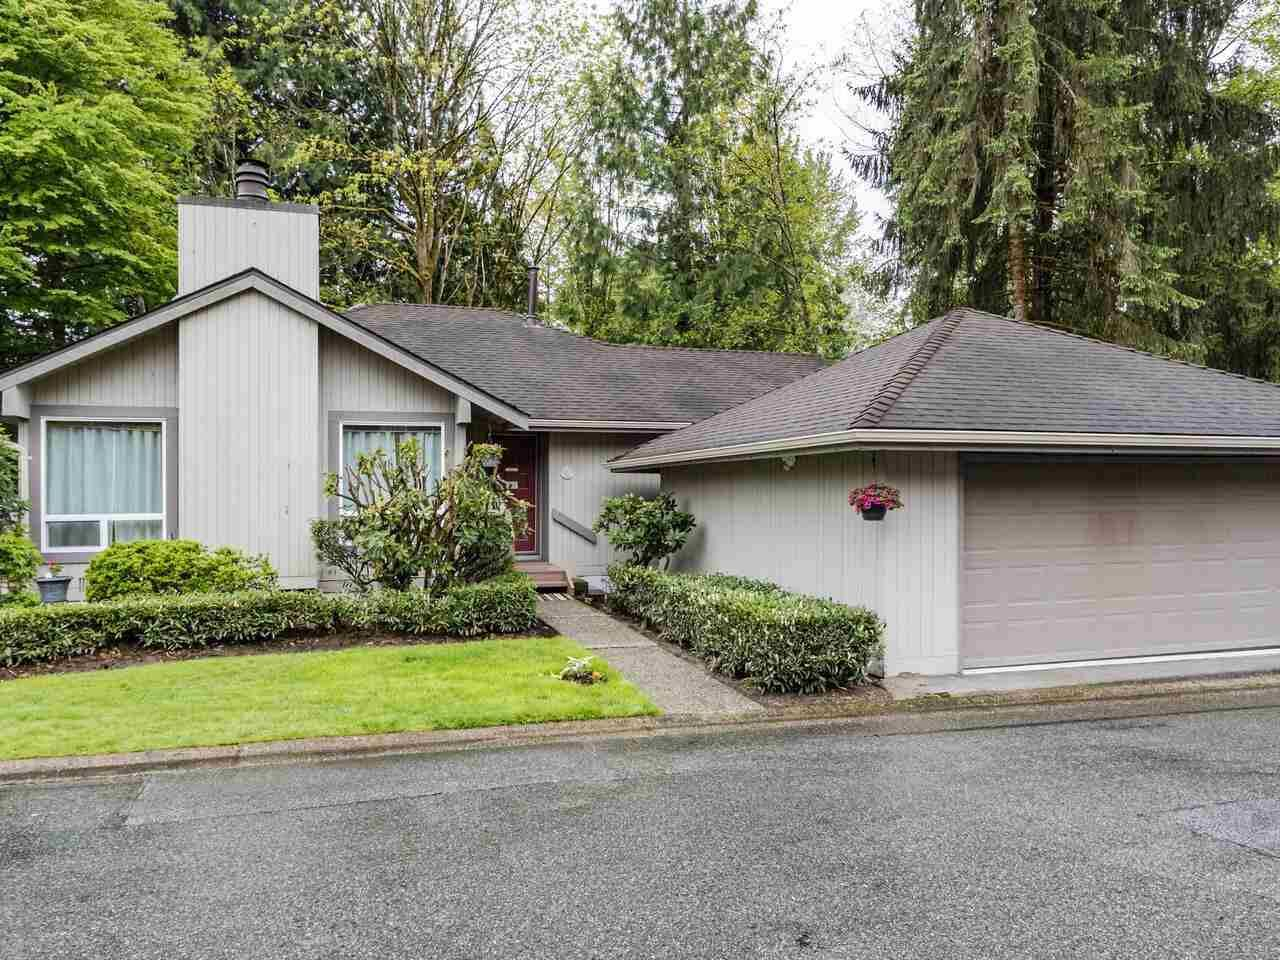 """Main Photo: 9502 WILLOWLEAF Place in Burnaby: Forest Hills BN Townhouse for sale in """"Willowleaf"""" (Burnaby North)  : MLS®# R2588078"""